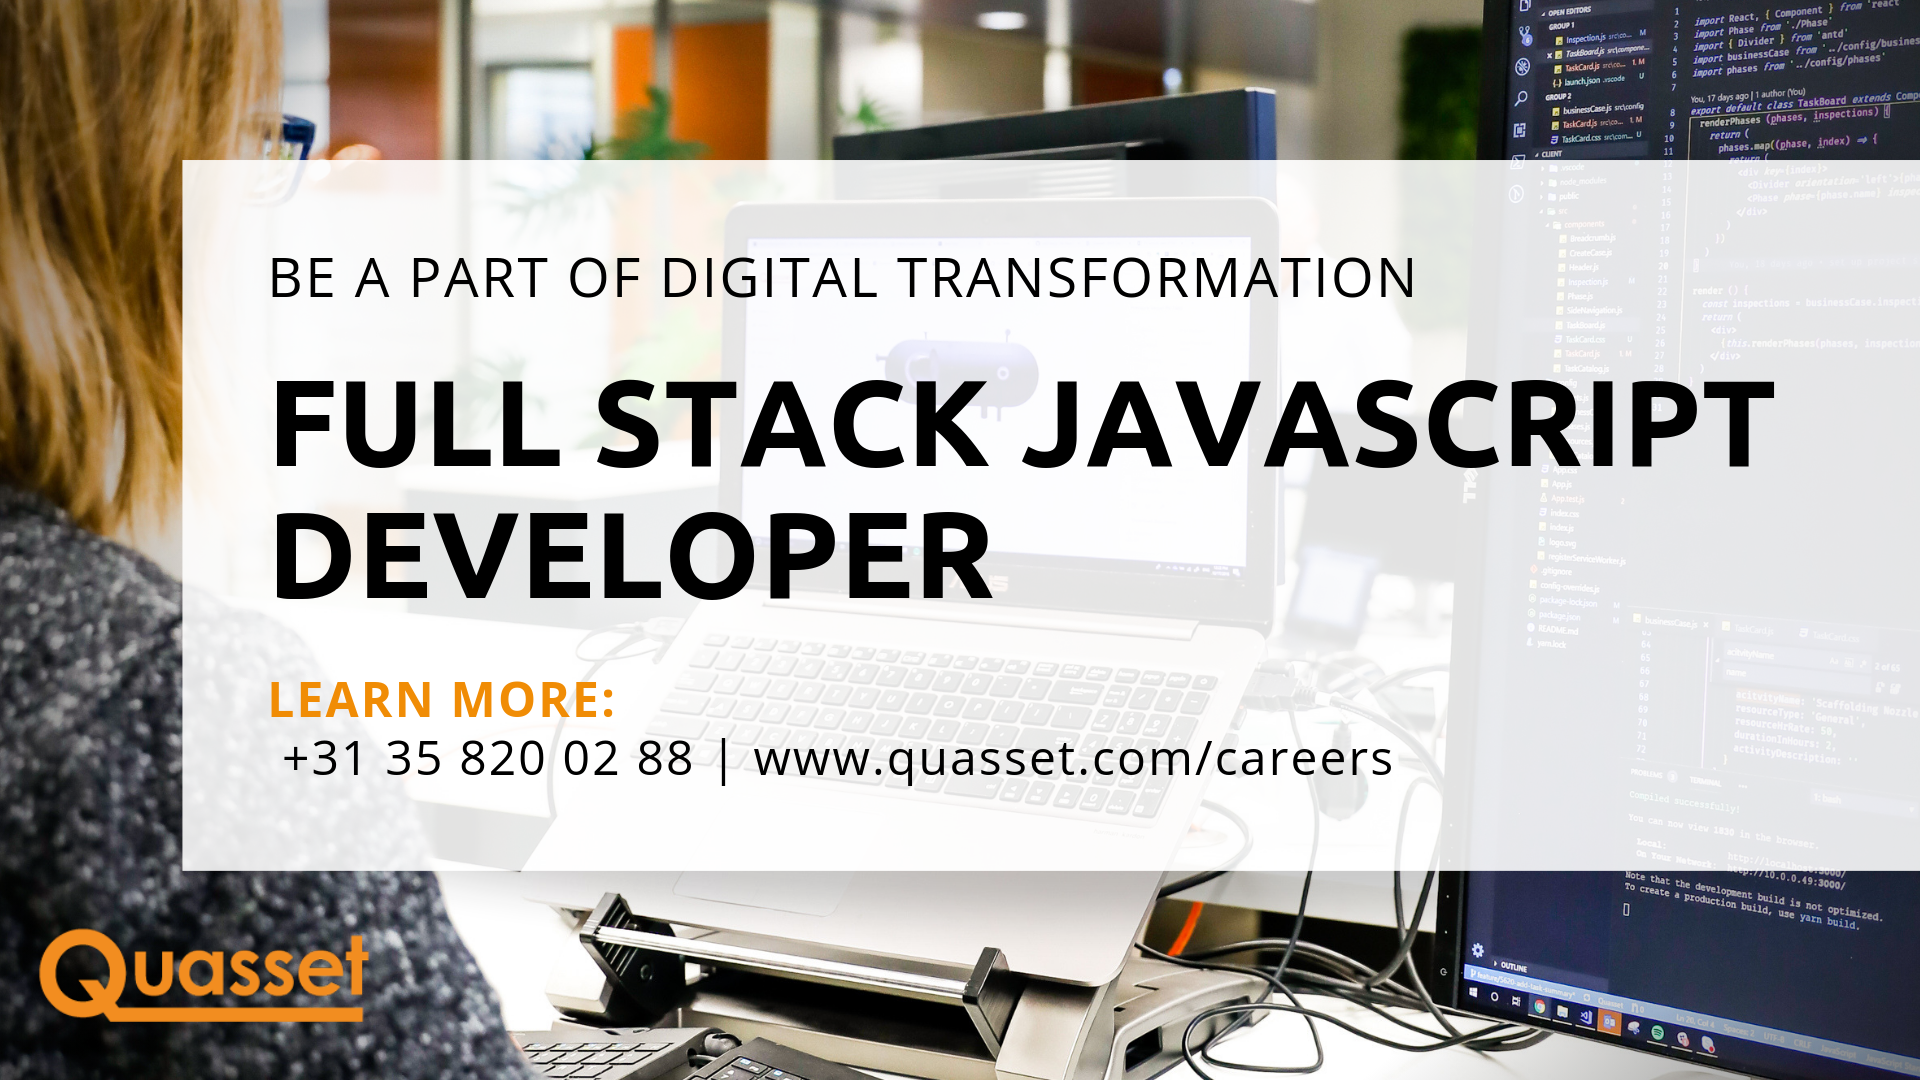 Full Stack JavaScript Developer Quasset